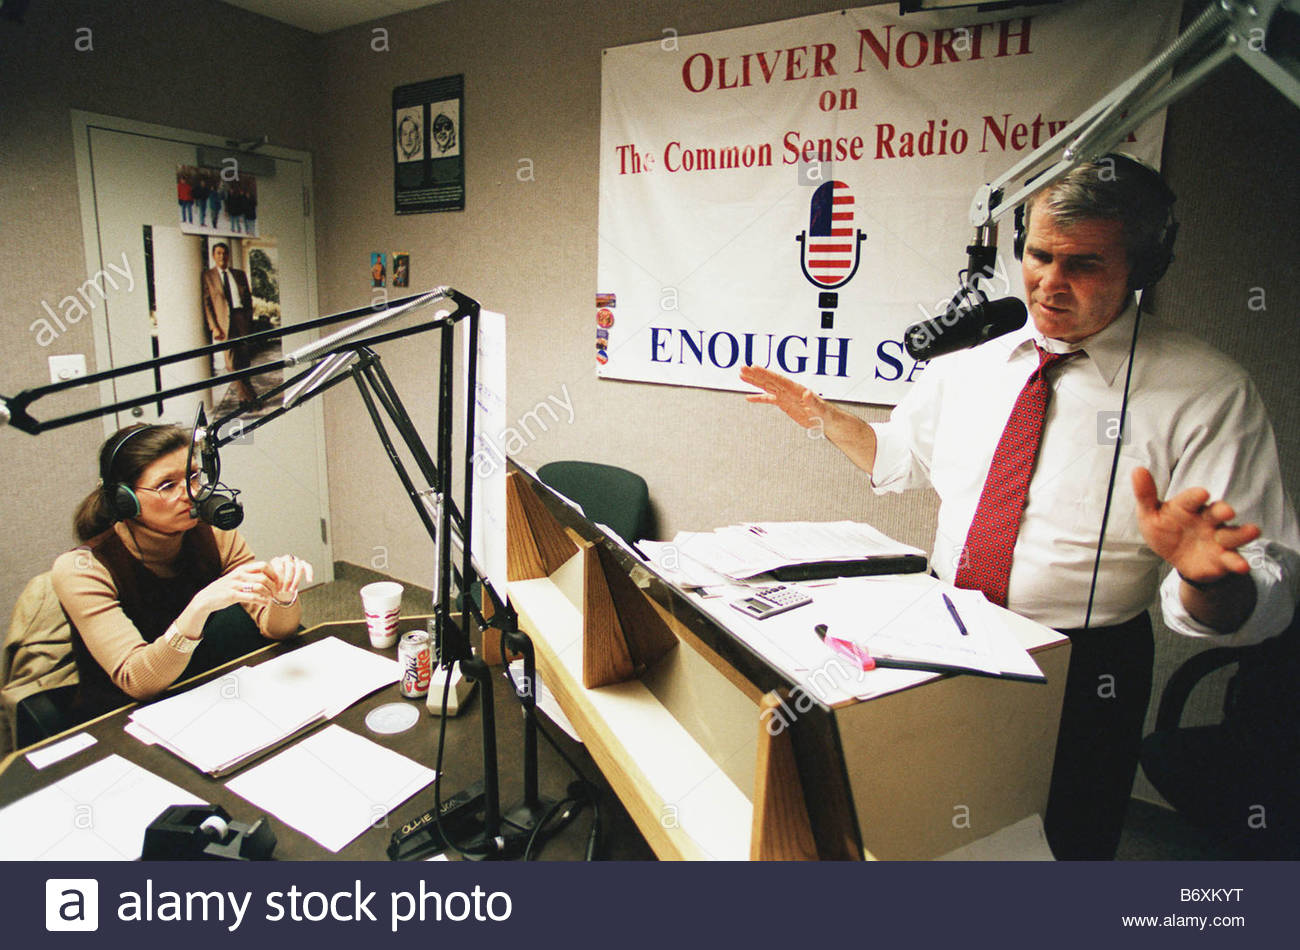 01 28 98 OLLIE NORTH RADIO SHOW During his show the day after President Clinton s State of the Union Address Oliver - Stock Image